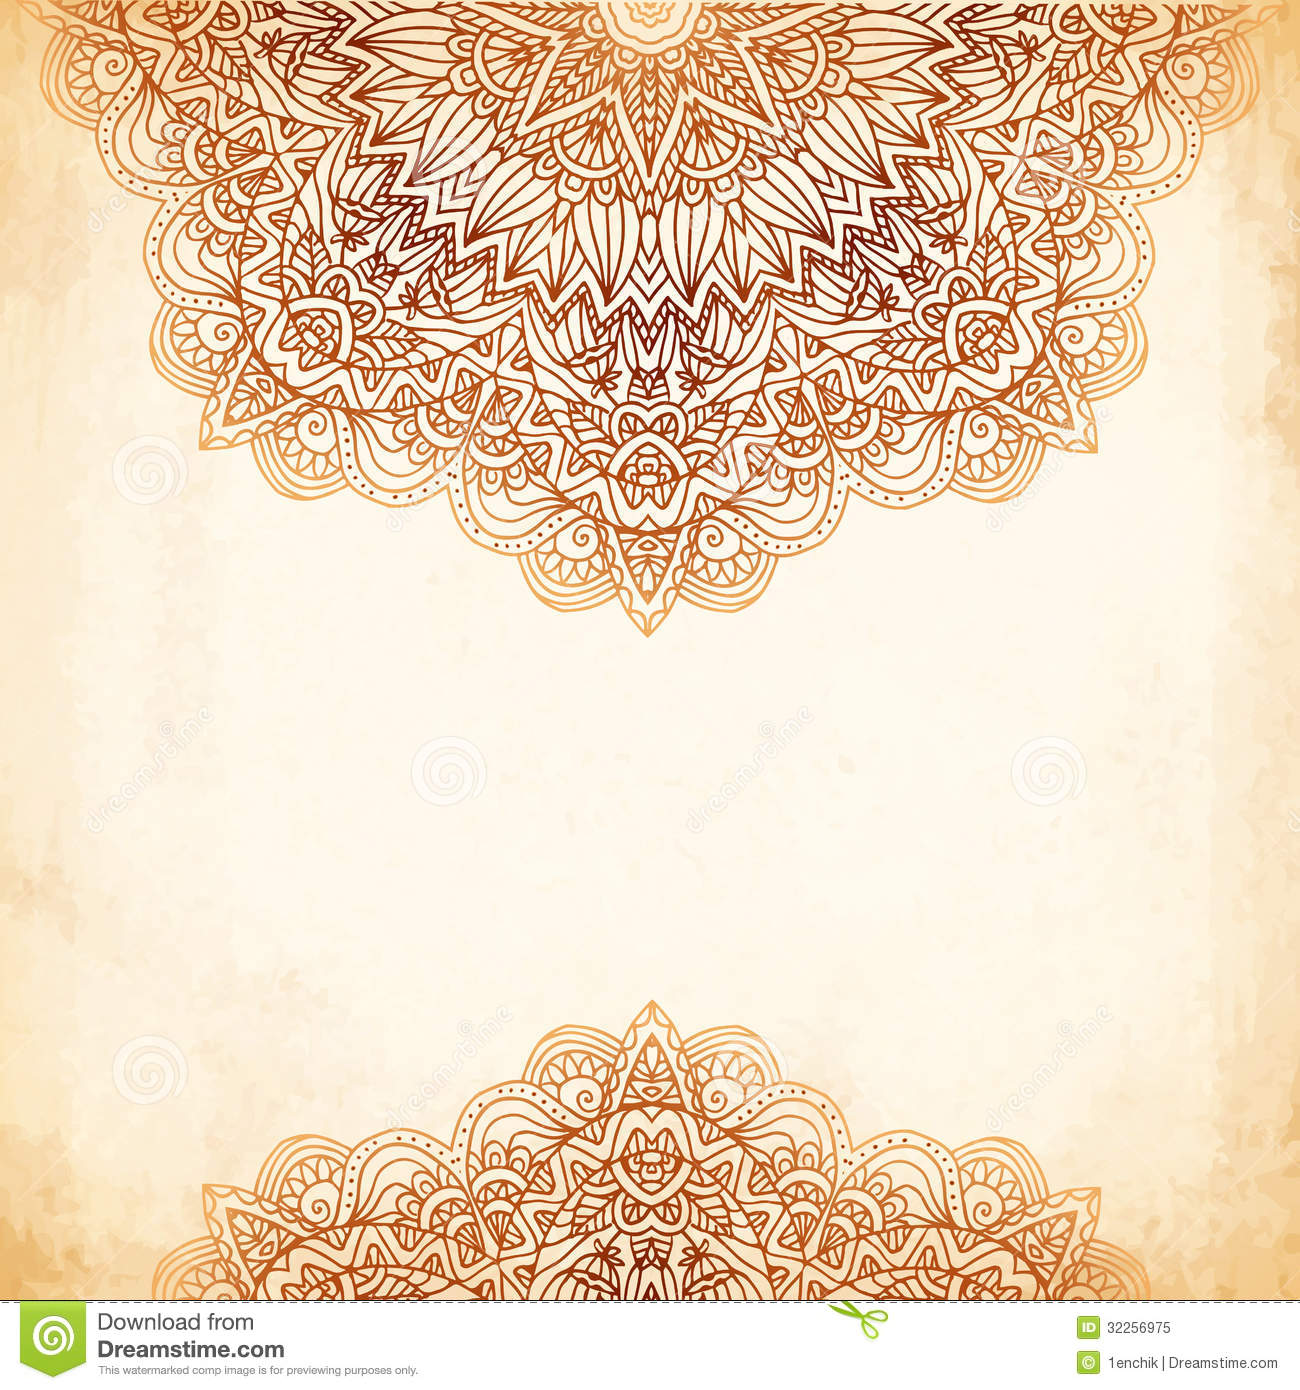 Mehndi Ceremony Background Wallpapers : Ornate vintage vector background in mehndi style stock